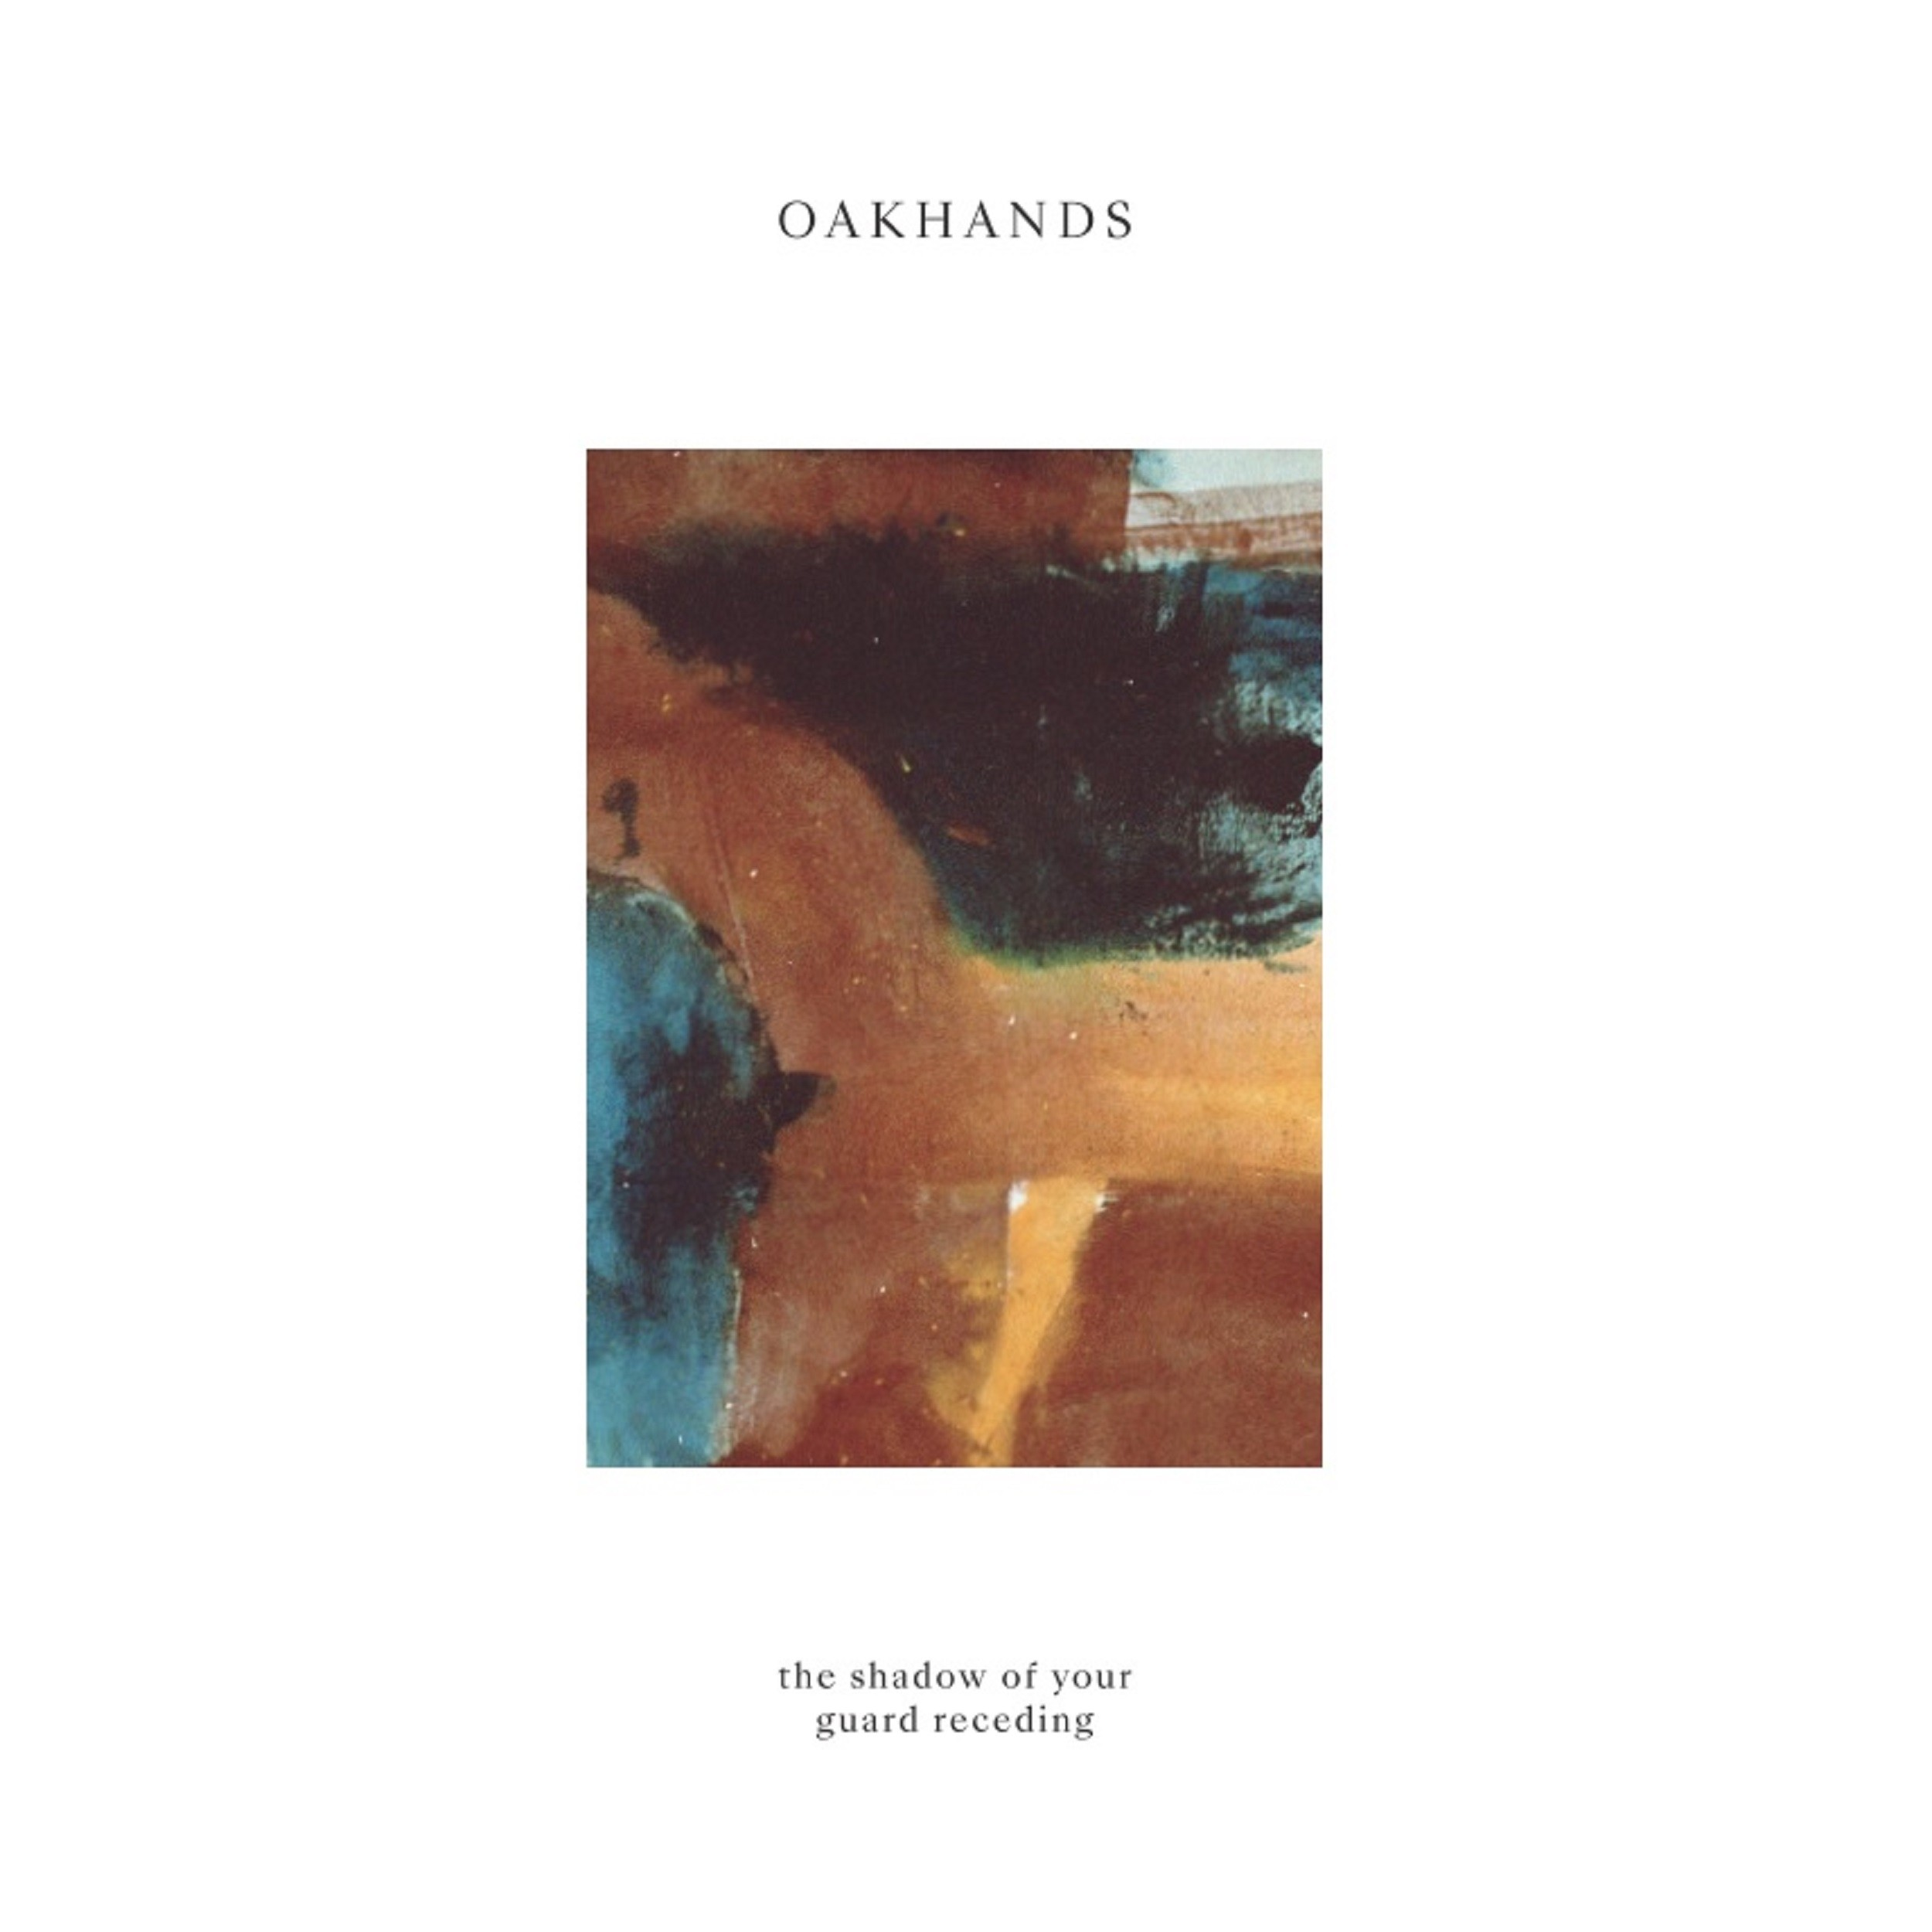 Oakhands – The Shadow of Your Guard Receding LP/CD/Digital